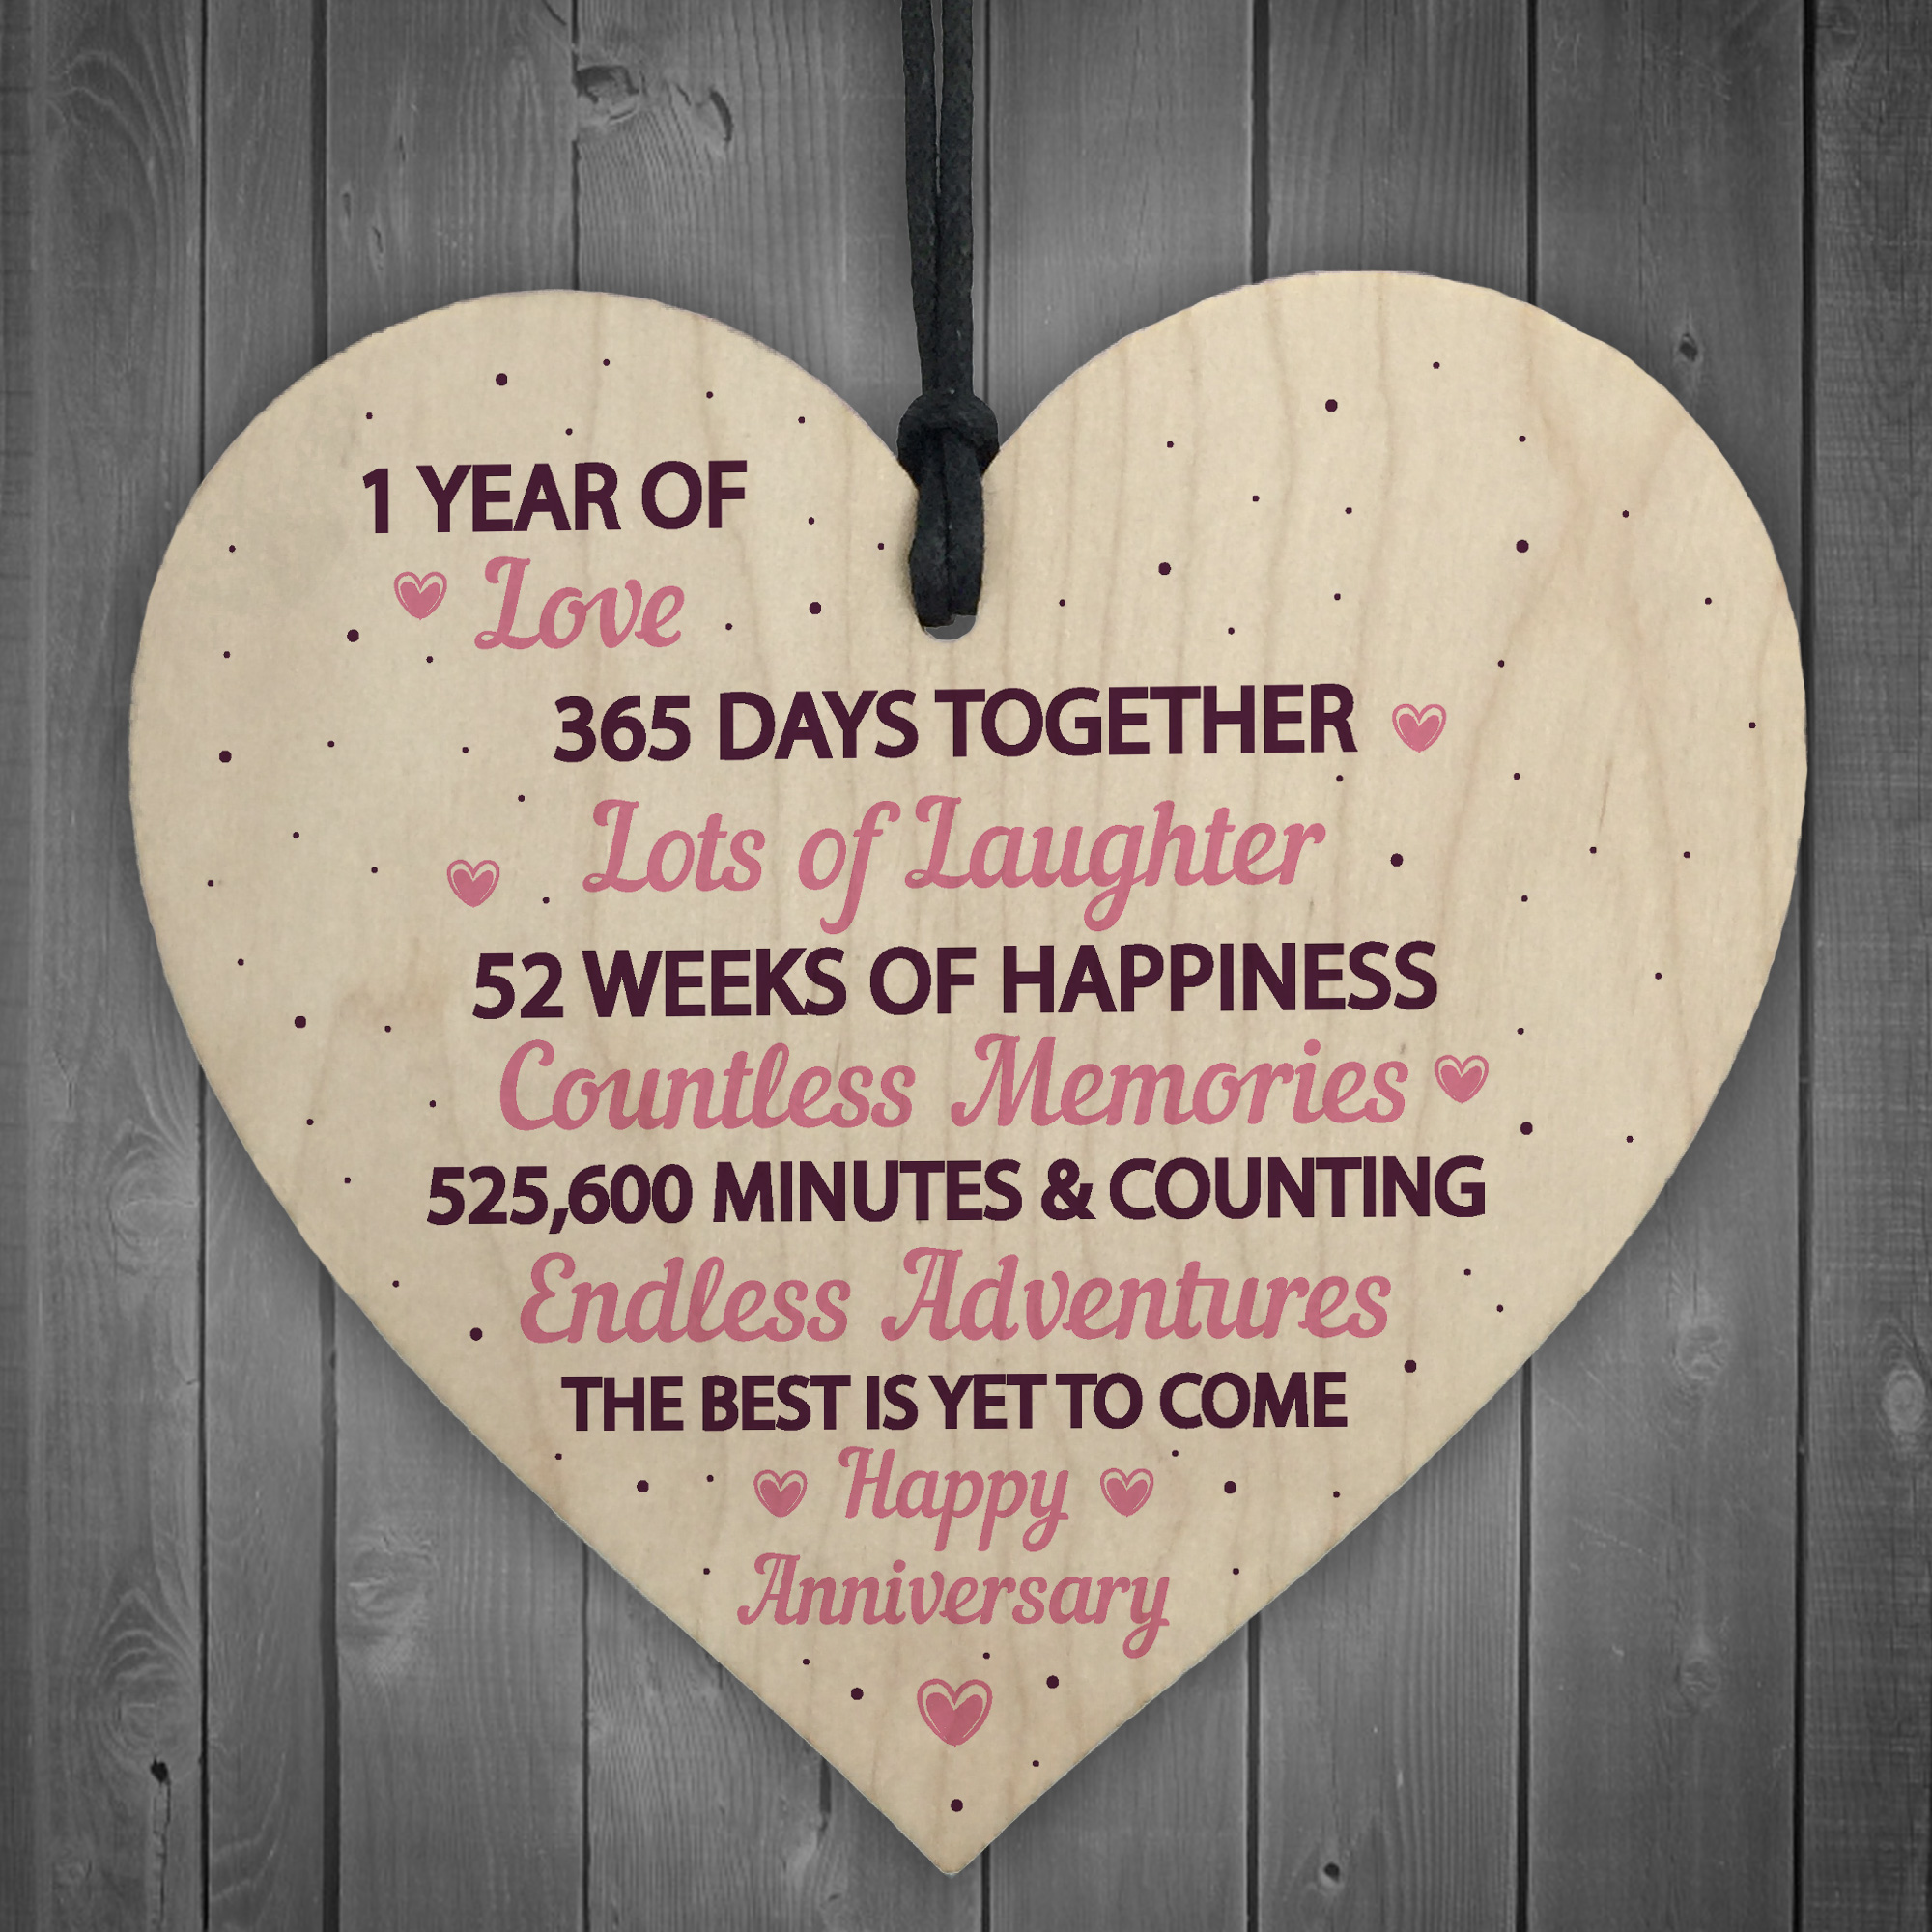 1 Year Wedding Anniversary Gifts For Her.Details About 1st Wedding Anniversary Gift Wood Heart First Wedding Anniversary Gift For Wife